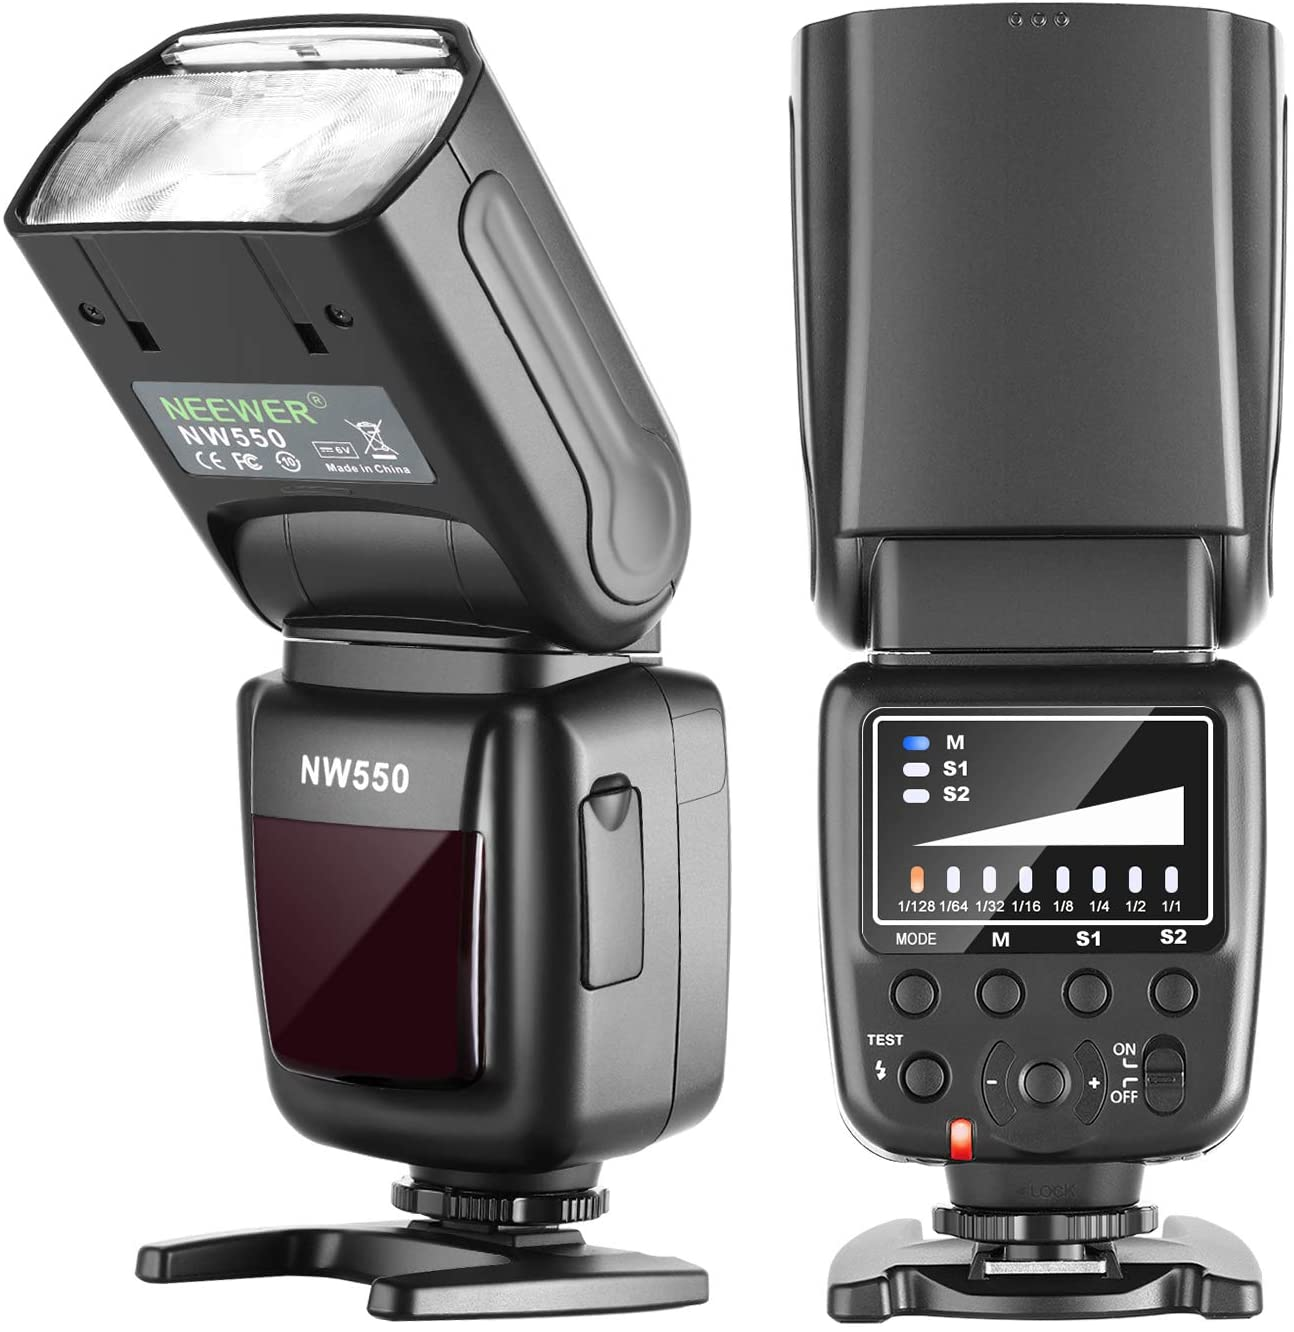 Neewer NW550 Camera Flash Speedlite, Compatible with Canon Nikon Panasonic Olympus Pentax, Sony with Mi Hot Shoe and Other DSLRs and Mirrorless Cameras with Standard Hot Shoe